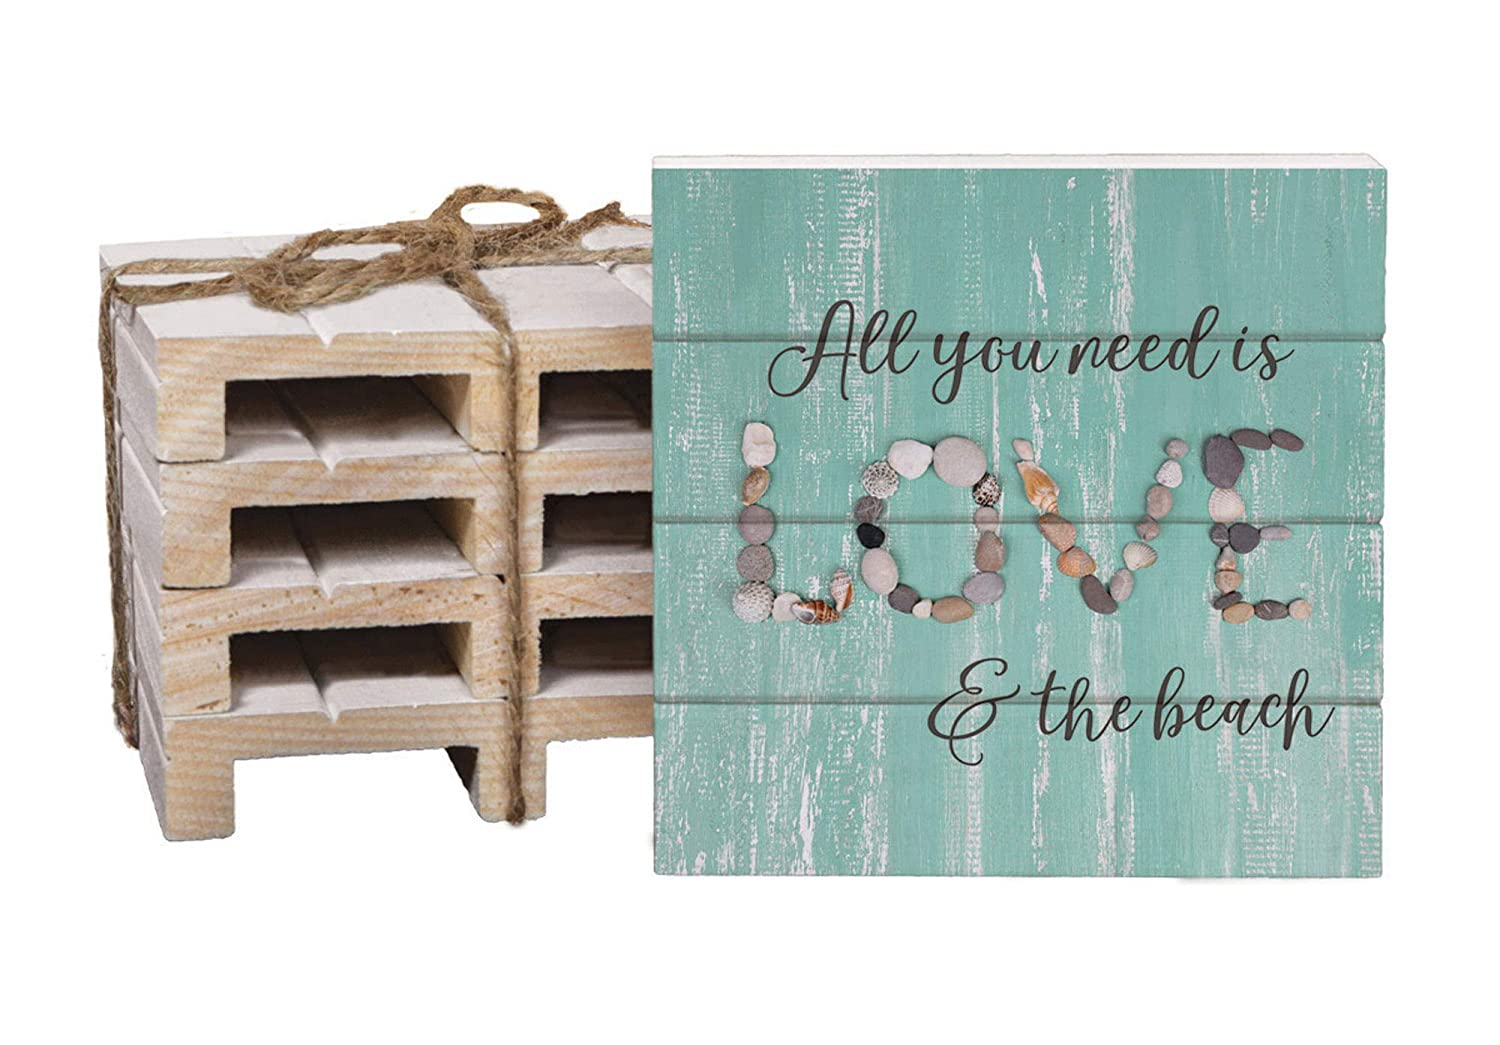 All You Need Is Love /& The Beach 4 x 4 Inch Dried Pine Wood Pallet Coaster Pack of 4